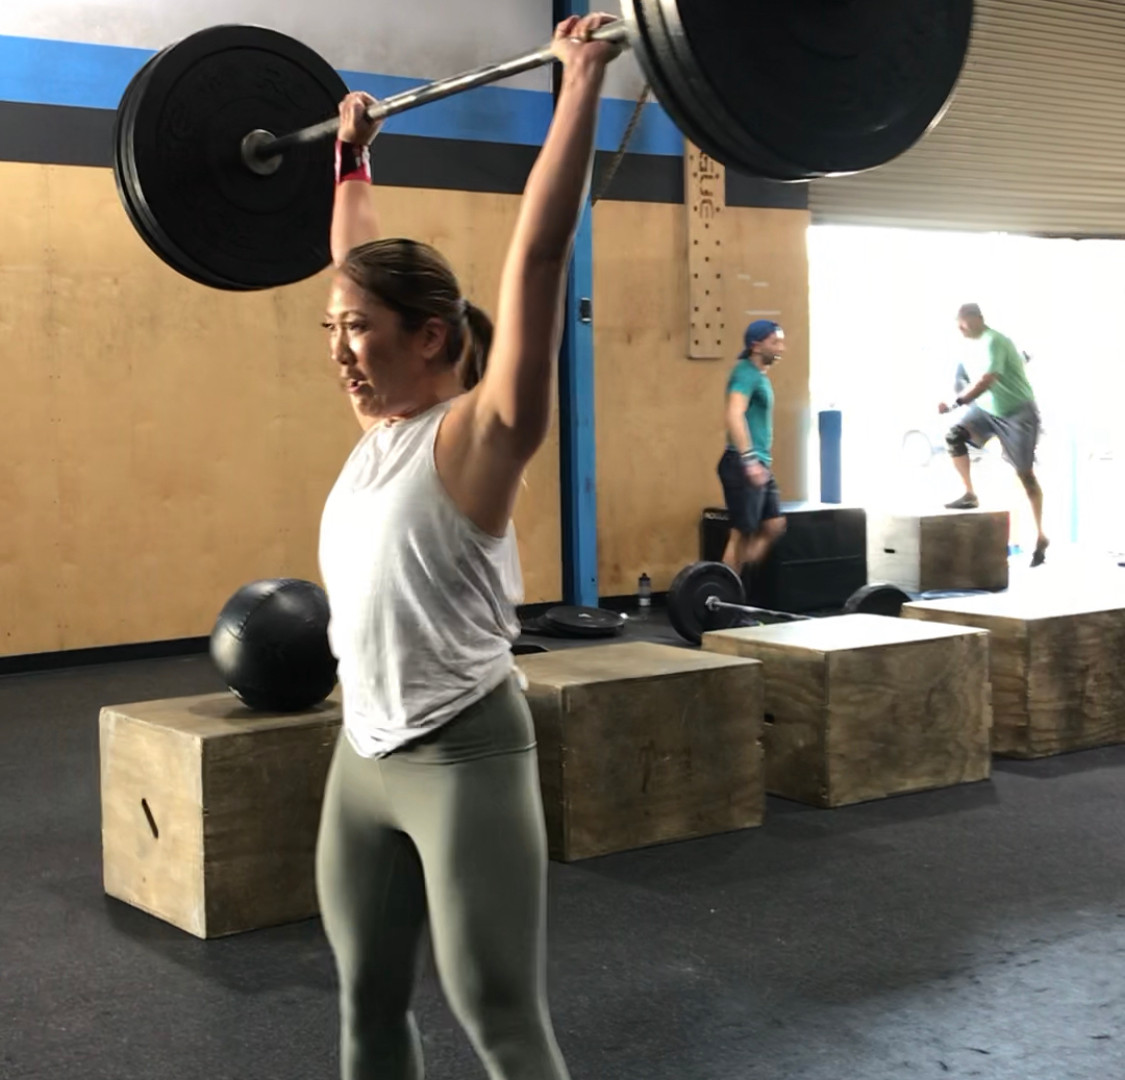 KRISTI - 37, OLY lifter, Nutrition client, Virtual Training